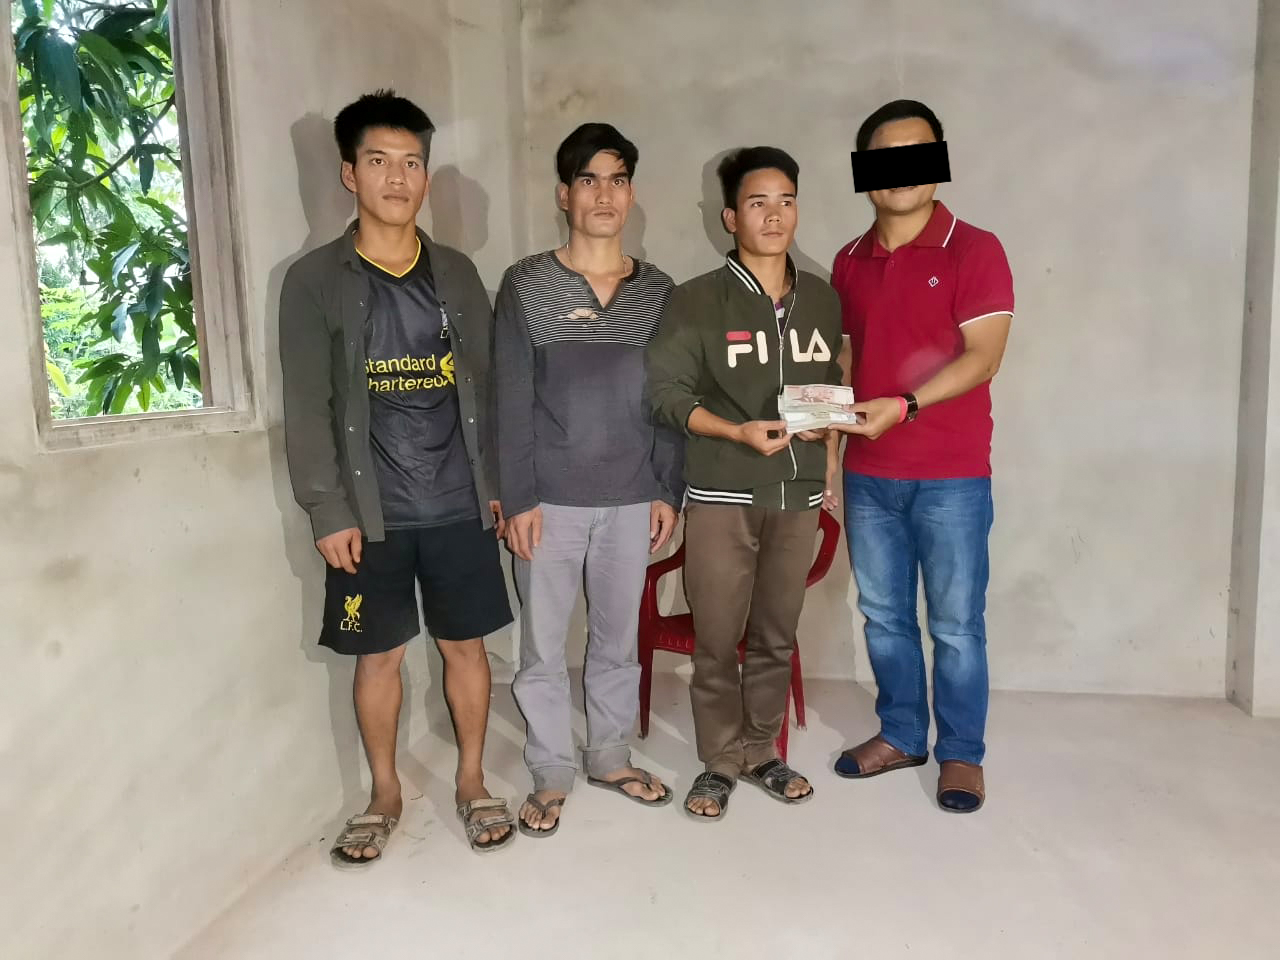 LAOS | JAN. 08, 2020 — Six Believers Evicted from Village at Gunpoint